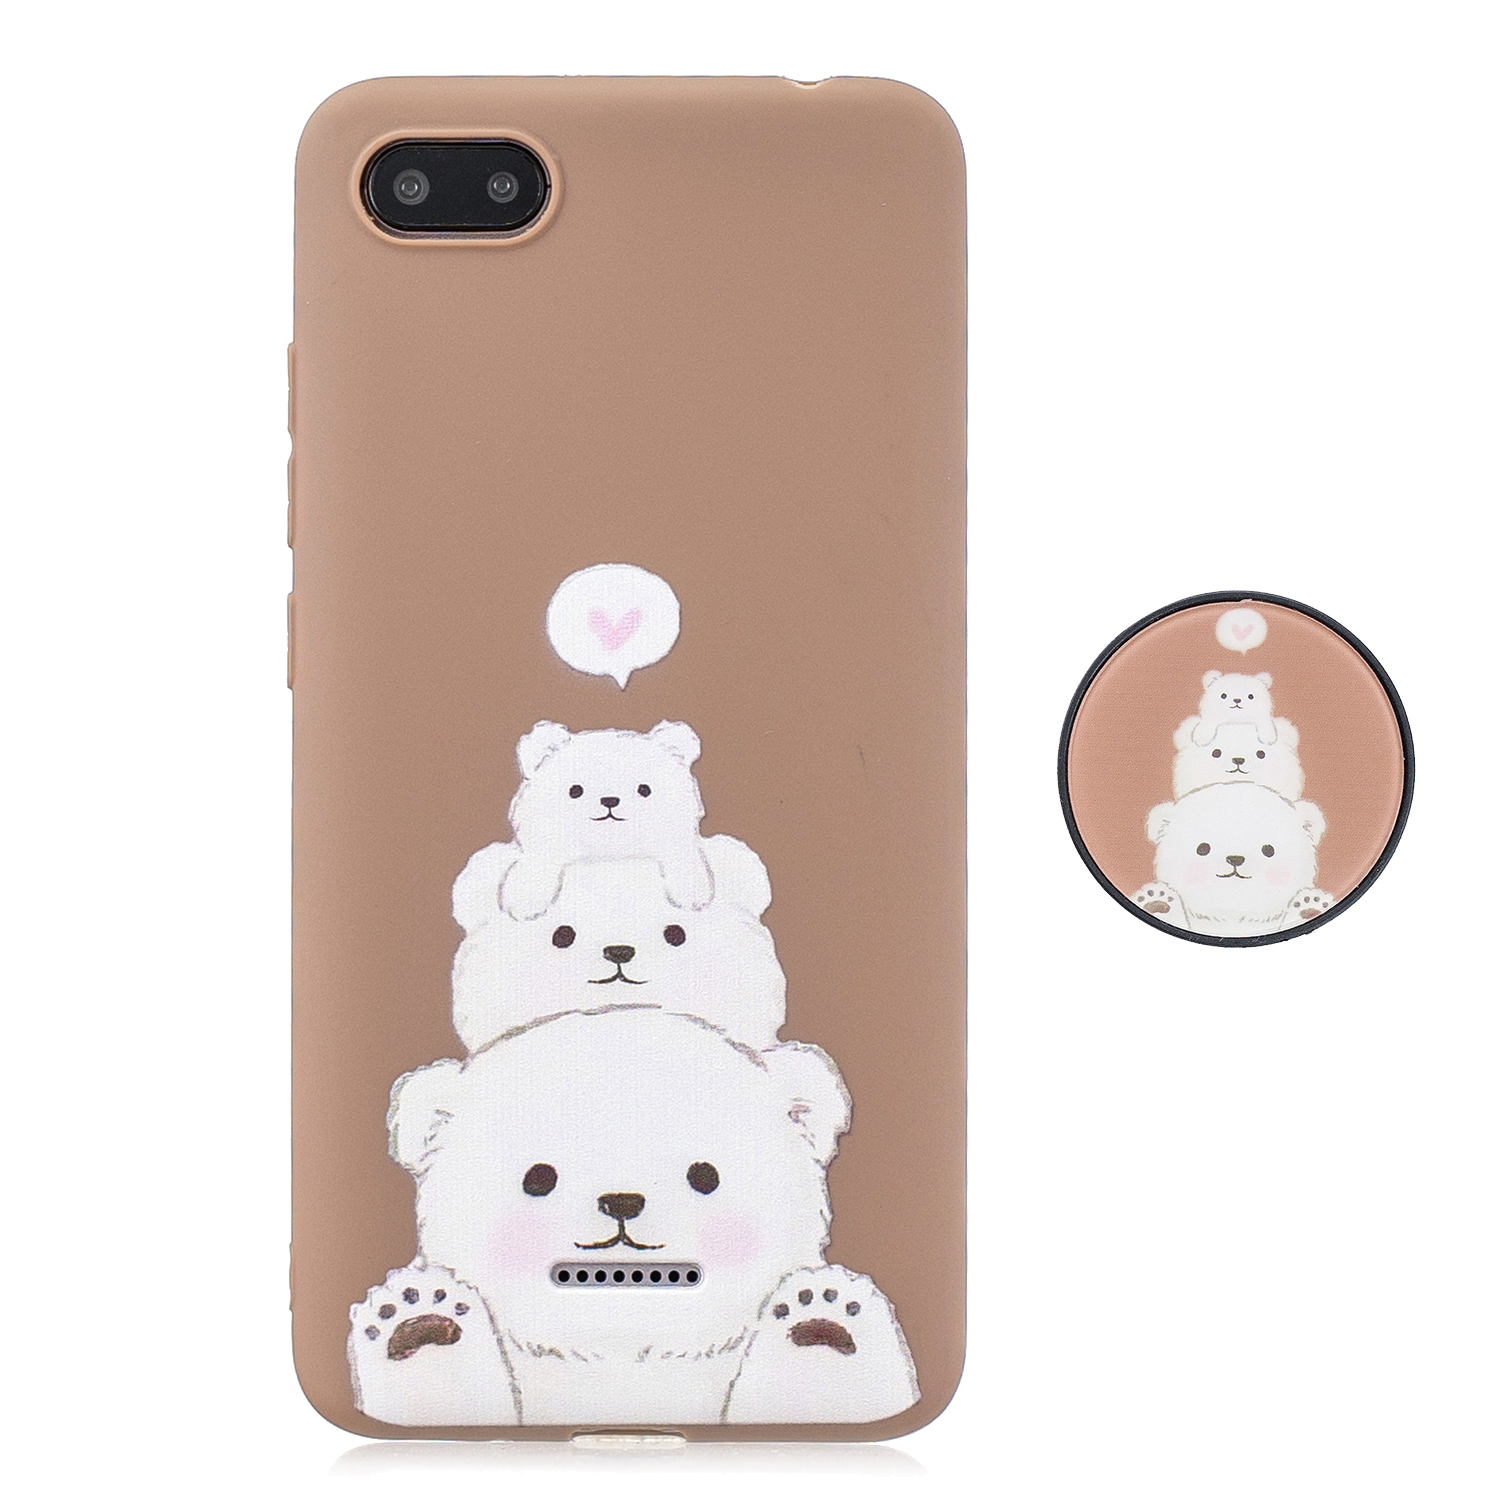 For Redmi 6A Phone Cases TPU Full Cover Cute Cartoon Painted Case Girls Mobile Phone Cover with Matched Pattern Adjustable Bracket 3